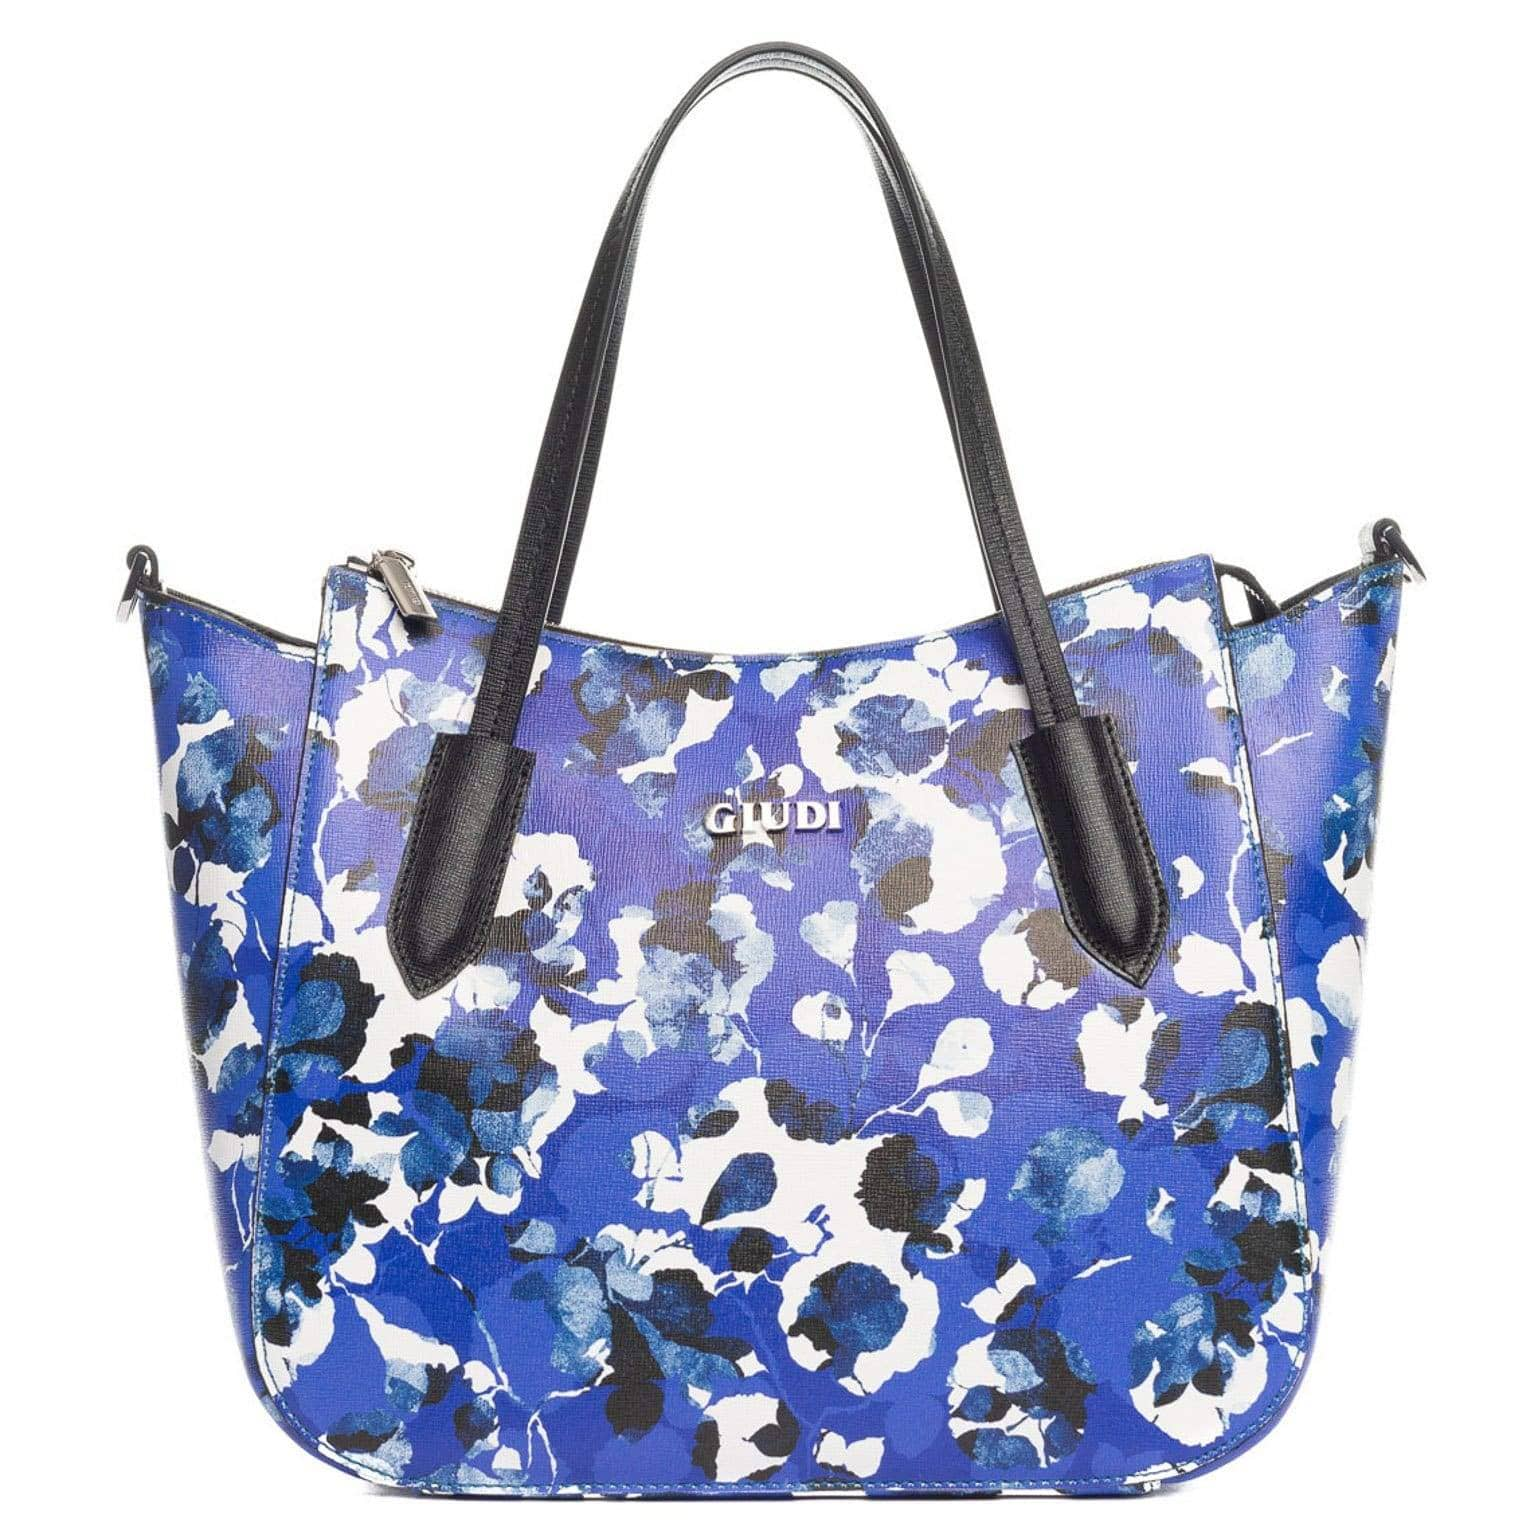 Floral Leather Handbag - Made in Italy - Handpainted